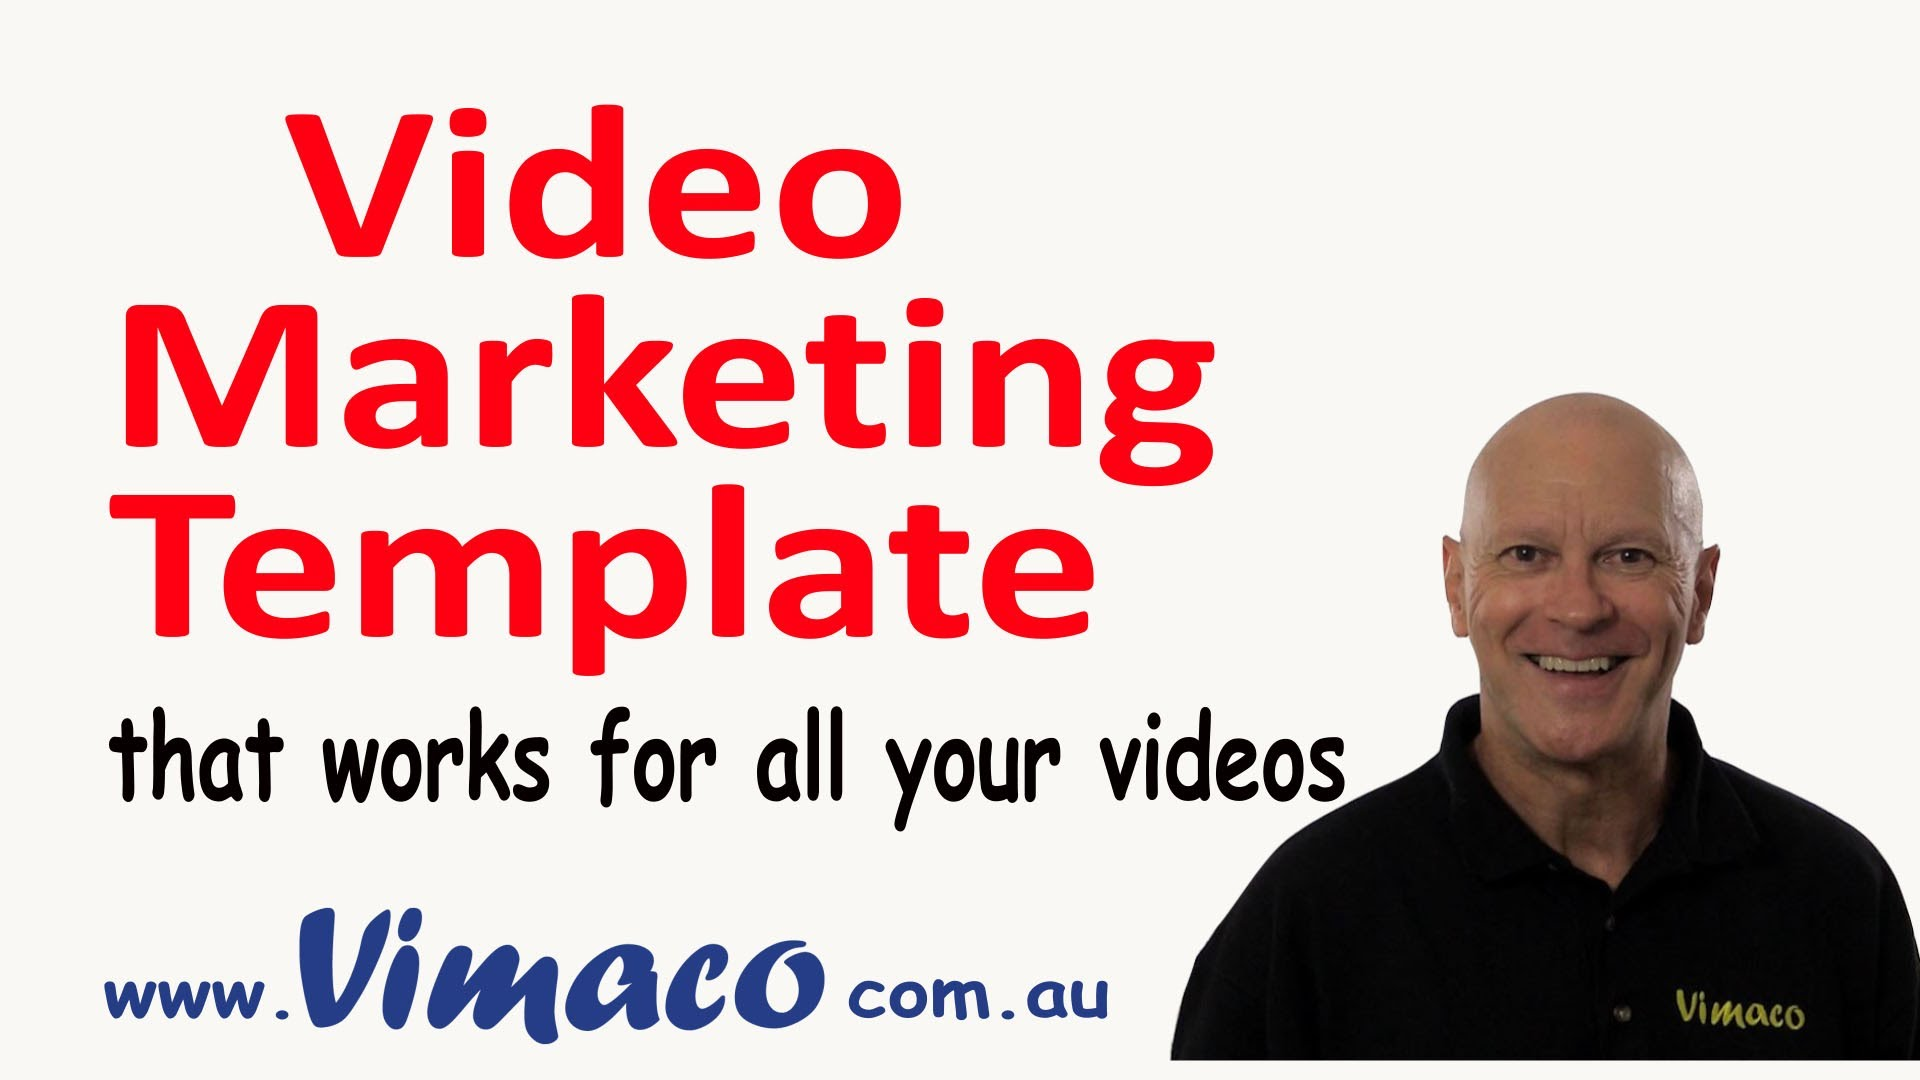 Video Marketing Template that will work for all your videos